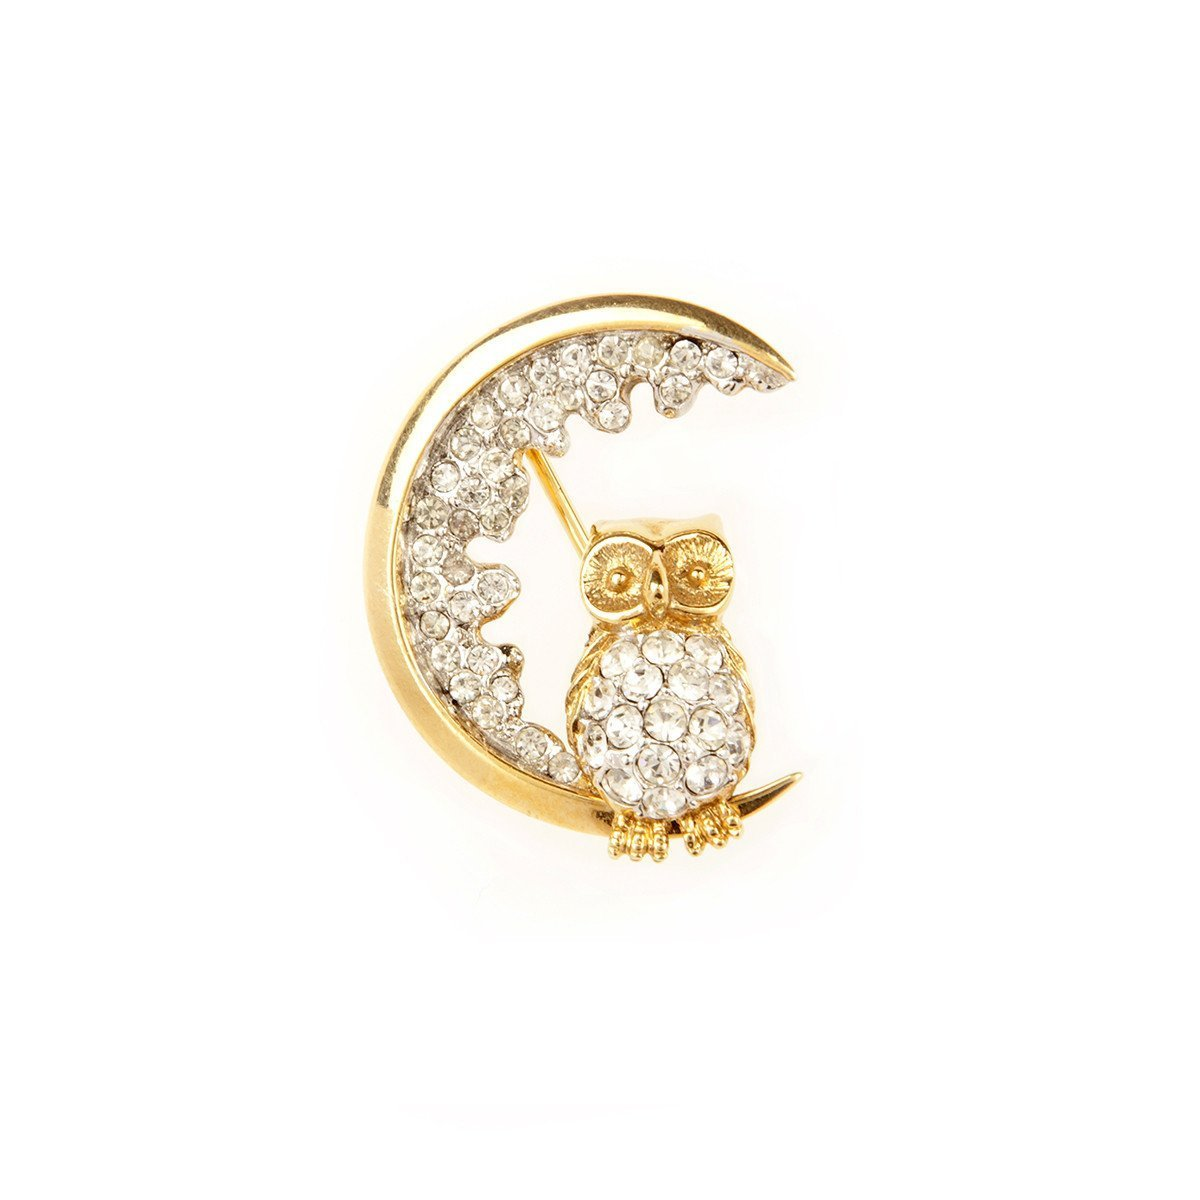 1960S VINTAGE ATTWOOD & SAWYER NIGHT OWL BROOCH